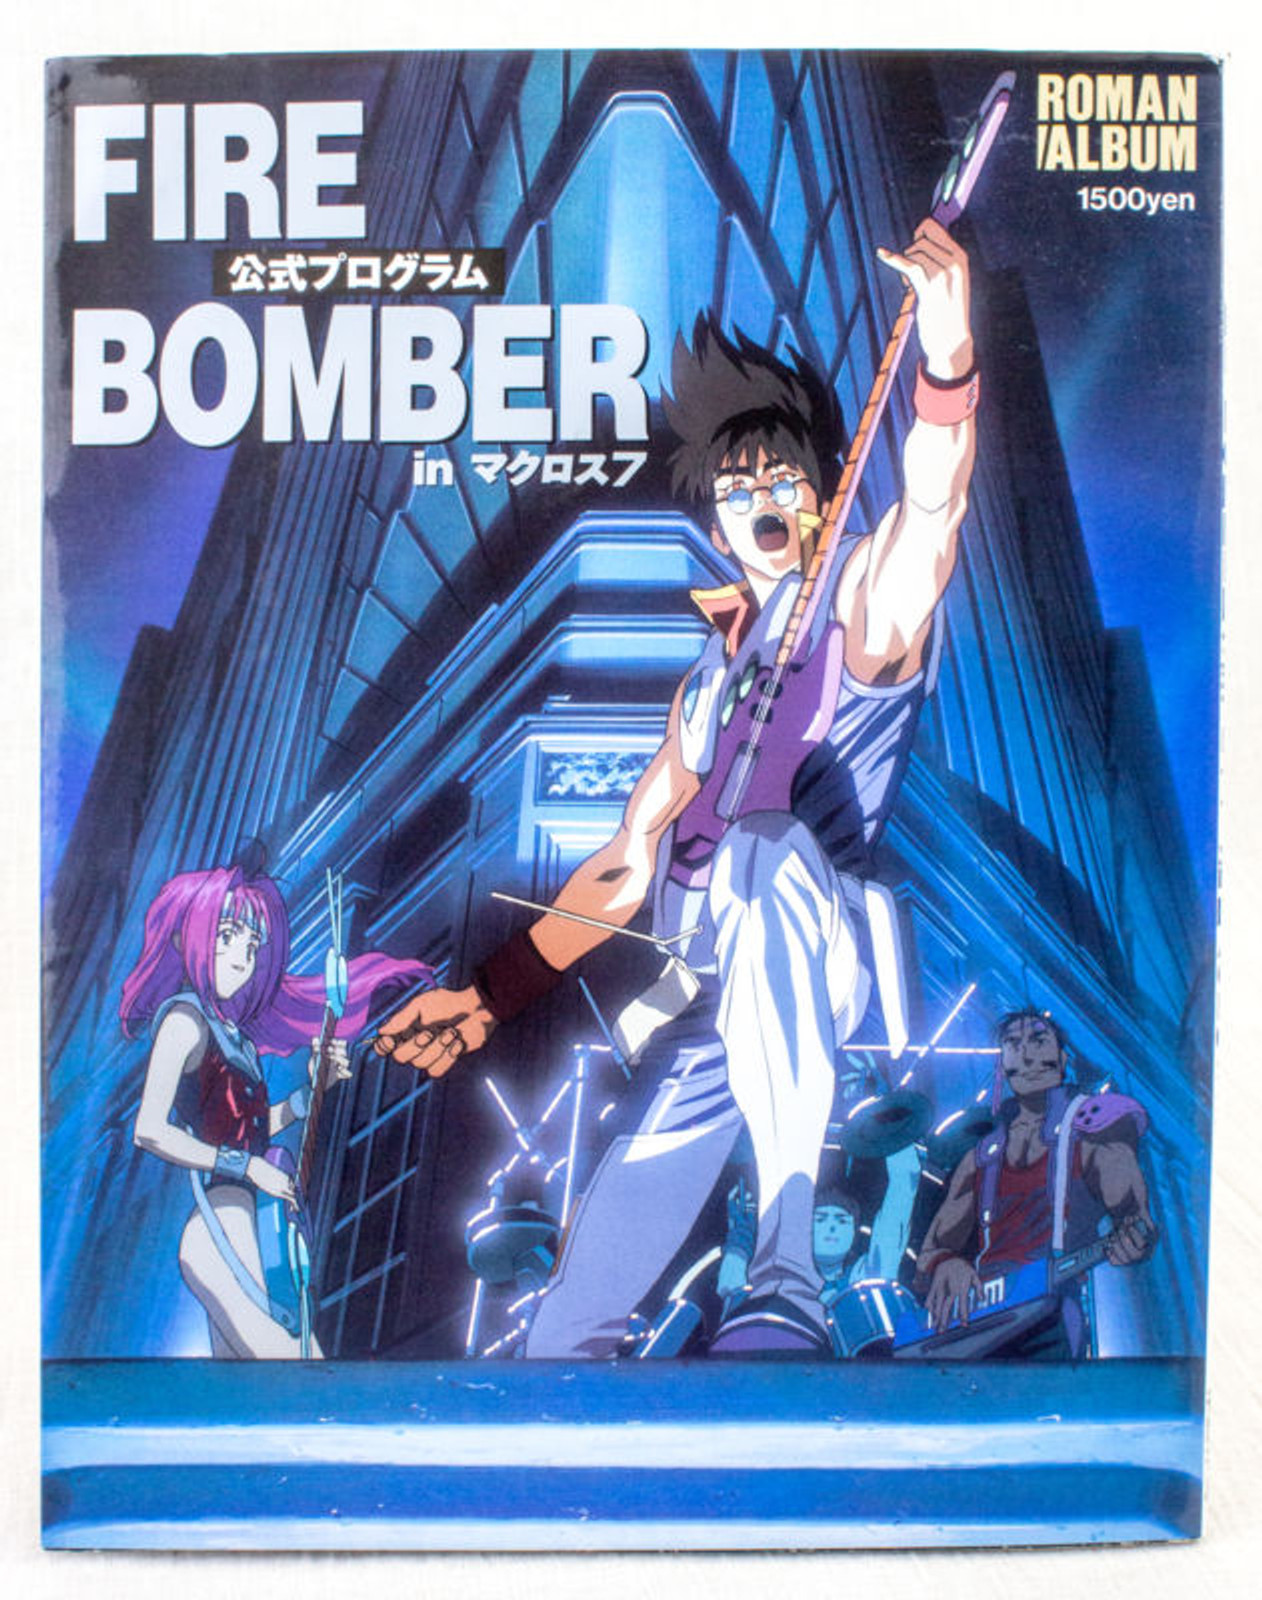 Macross 7 Fire Bomber Roman Album Illustration Art Book JAPAN ANIME MANGA